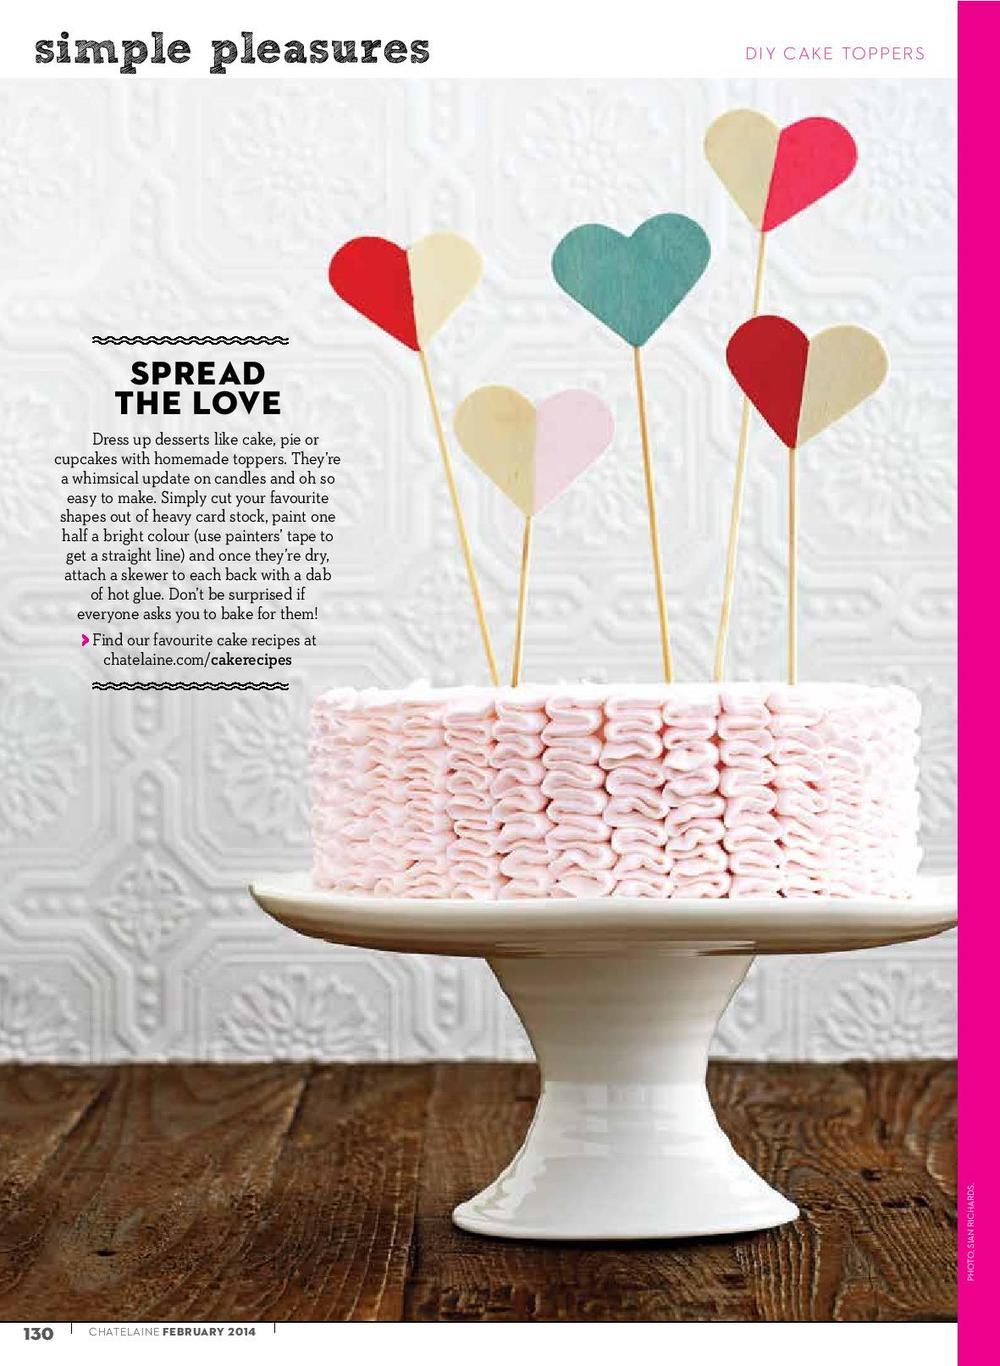 cake toppers feb 2014-page-001.jpg